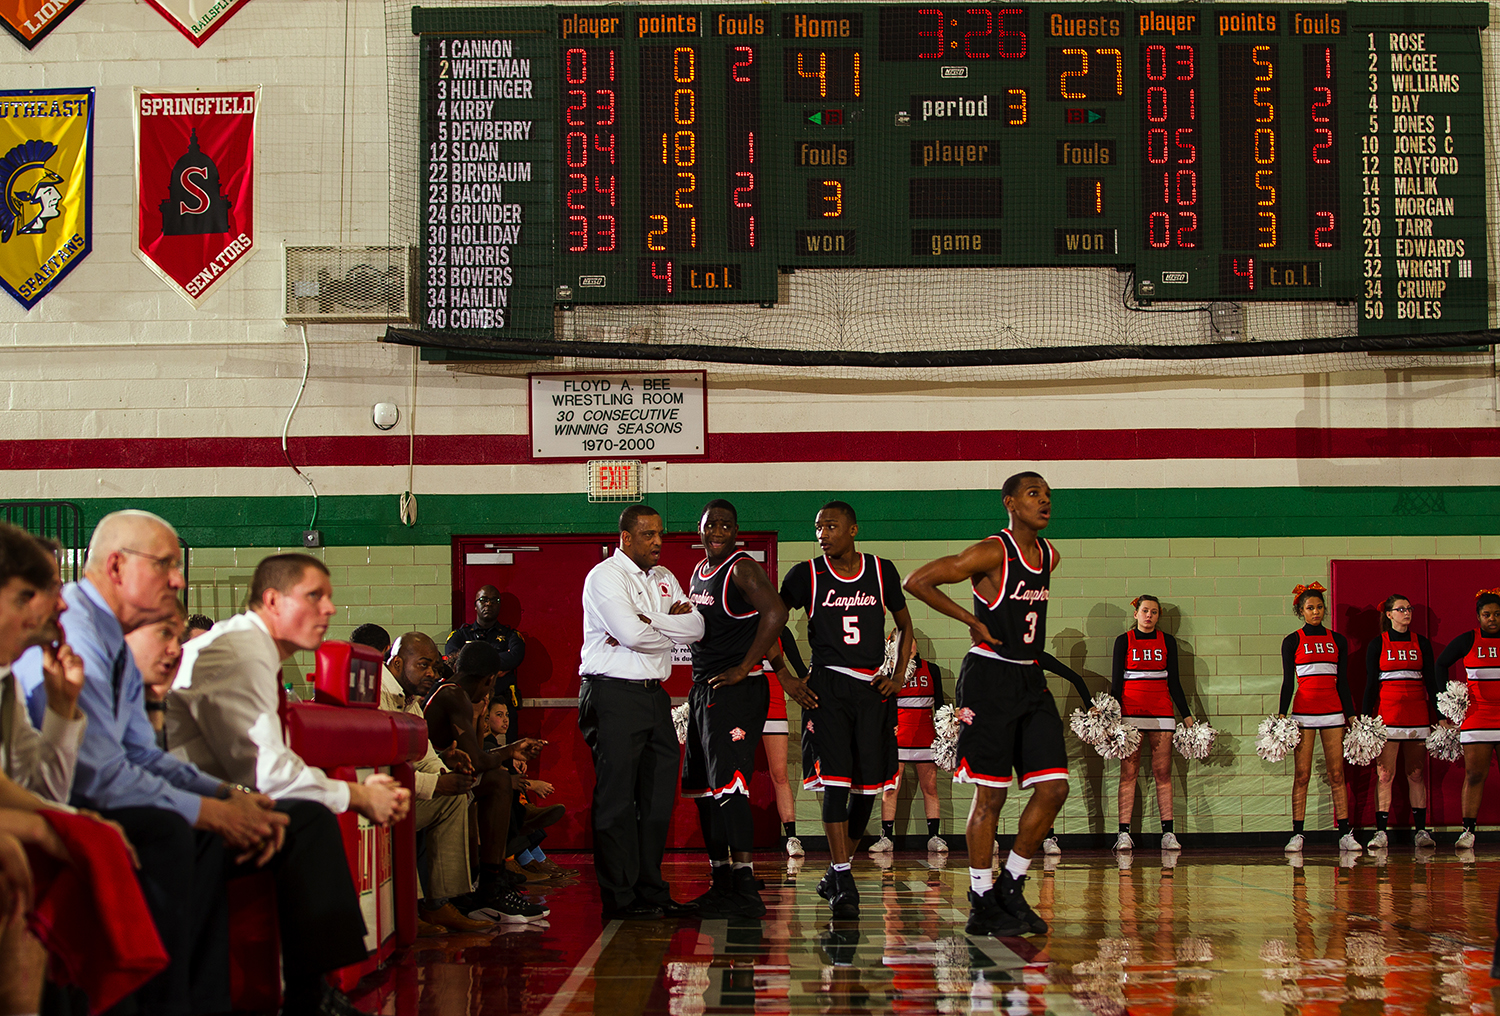 Lanphier head coach Blake Turner talks to his team as they face a steep deficit against Lincoln at Lincoln High School Friday, February 10, 2017. [Ted Schurter/The State Journal-Register]